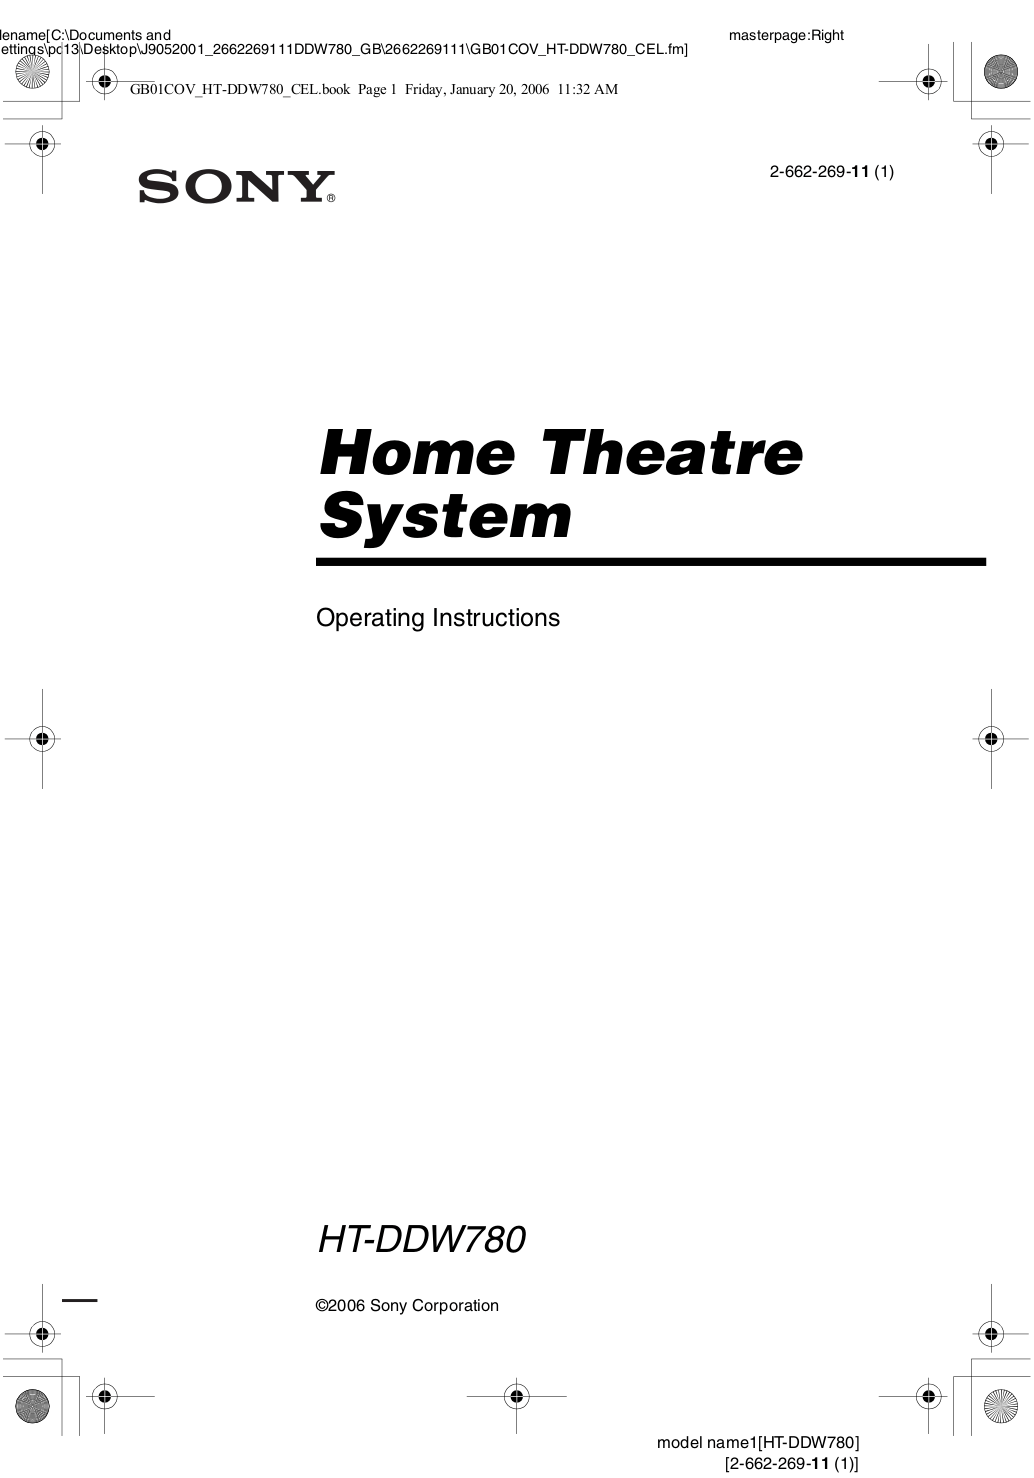 Download free pdf for Sony HT-DDW780 Home Theater manual